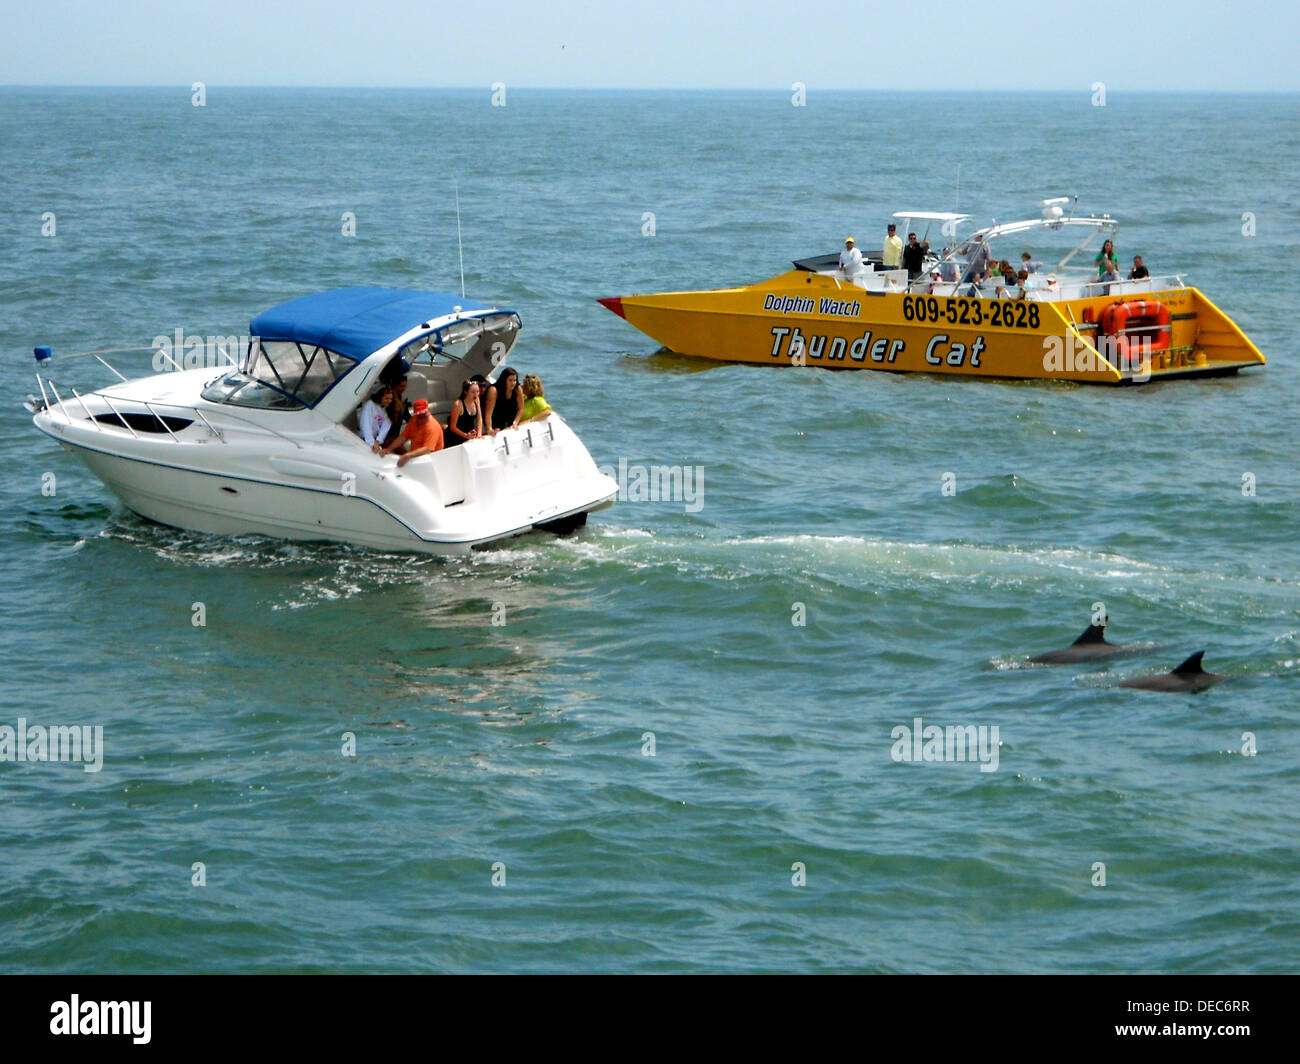 Two boats out dolphin watching in the ocean just south of Cape May, New Jersey - Stock Image